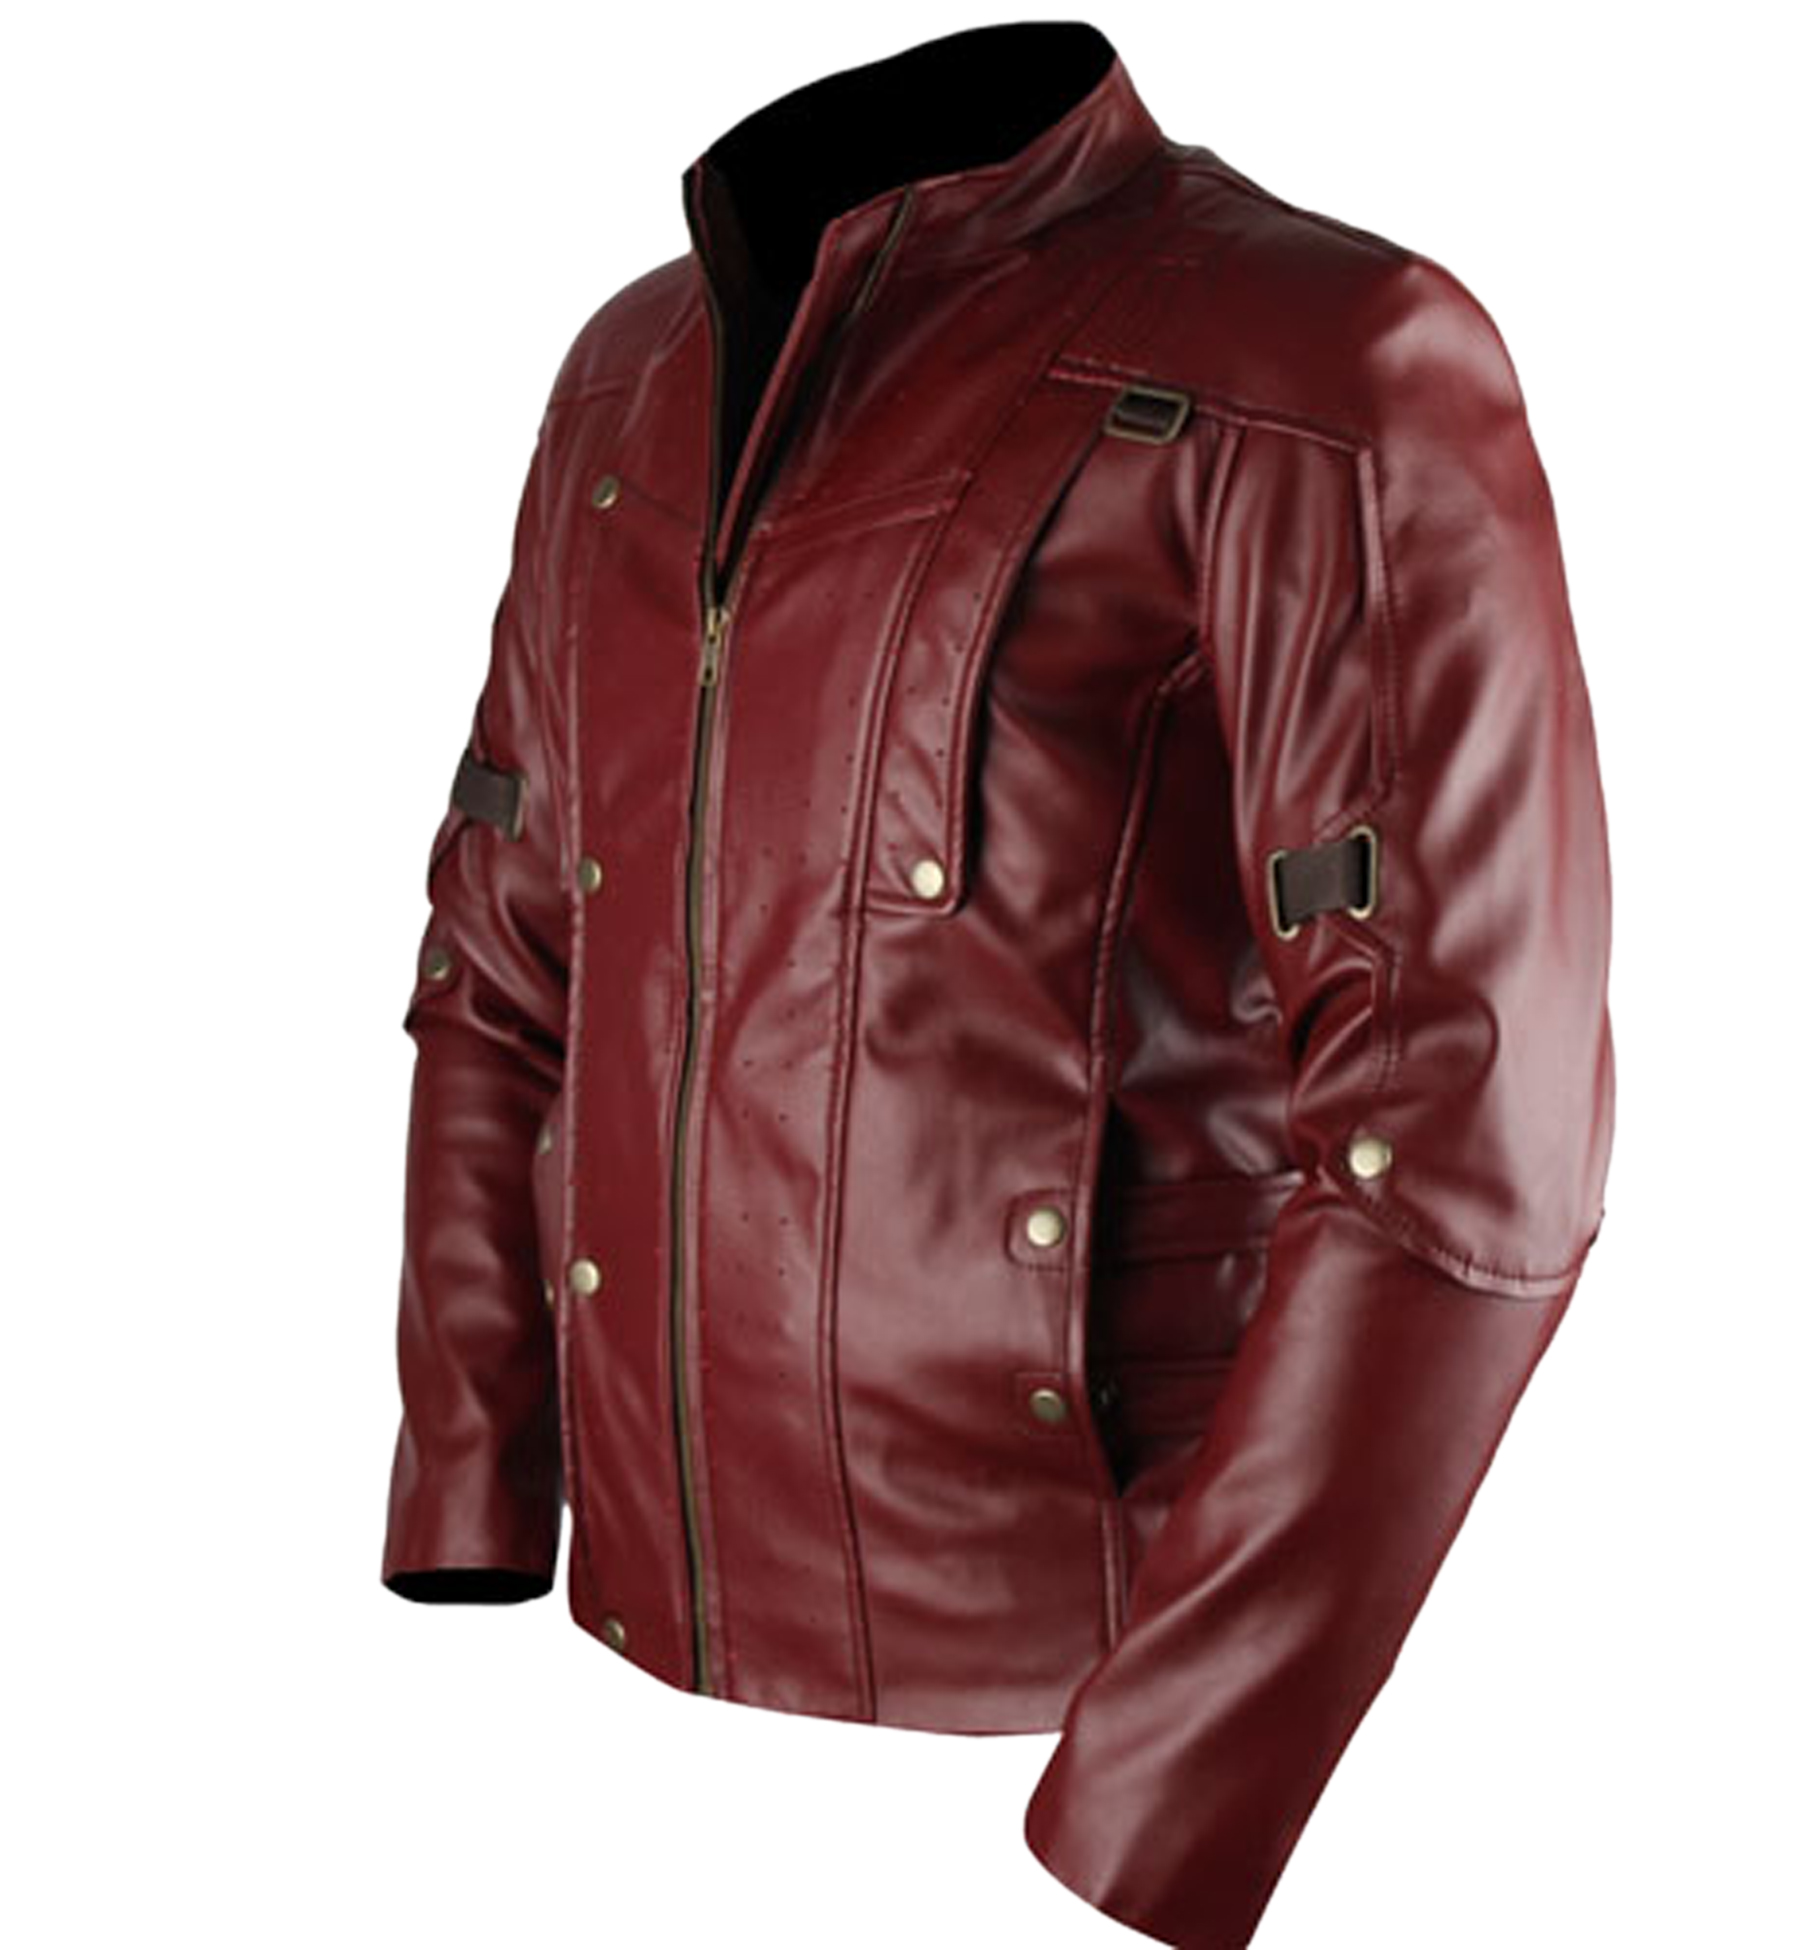 New-Star-Lord-Guardians-Of-The-Galaxy-Leather-Jacket-2-1